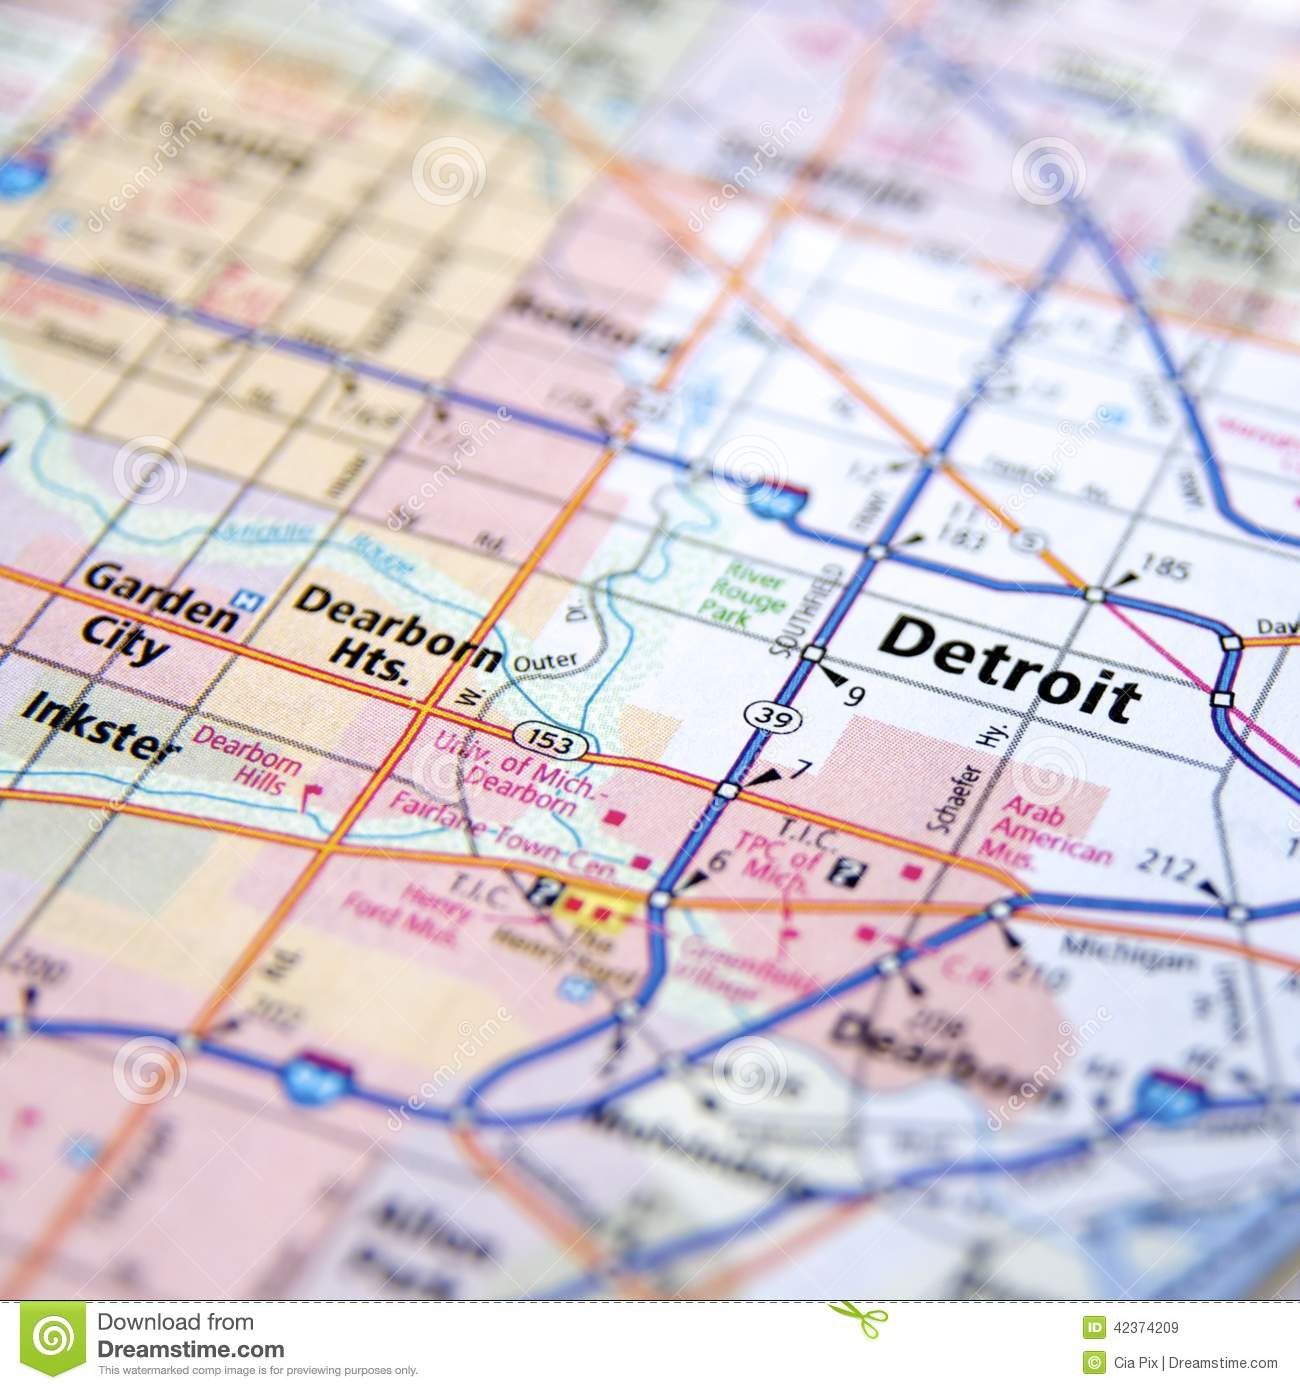 Highway Map Of Detroit Michigan Stock Image - Image of ...